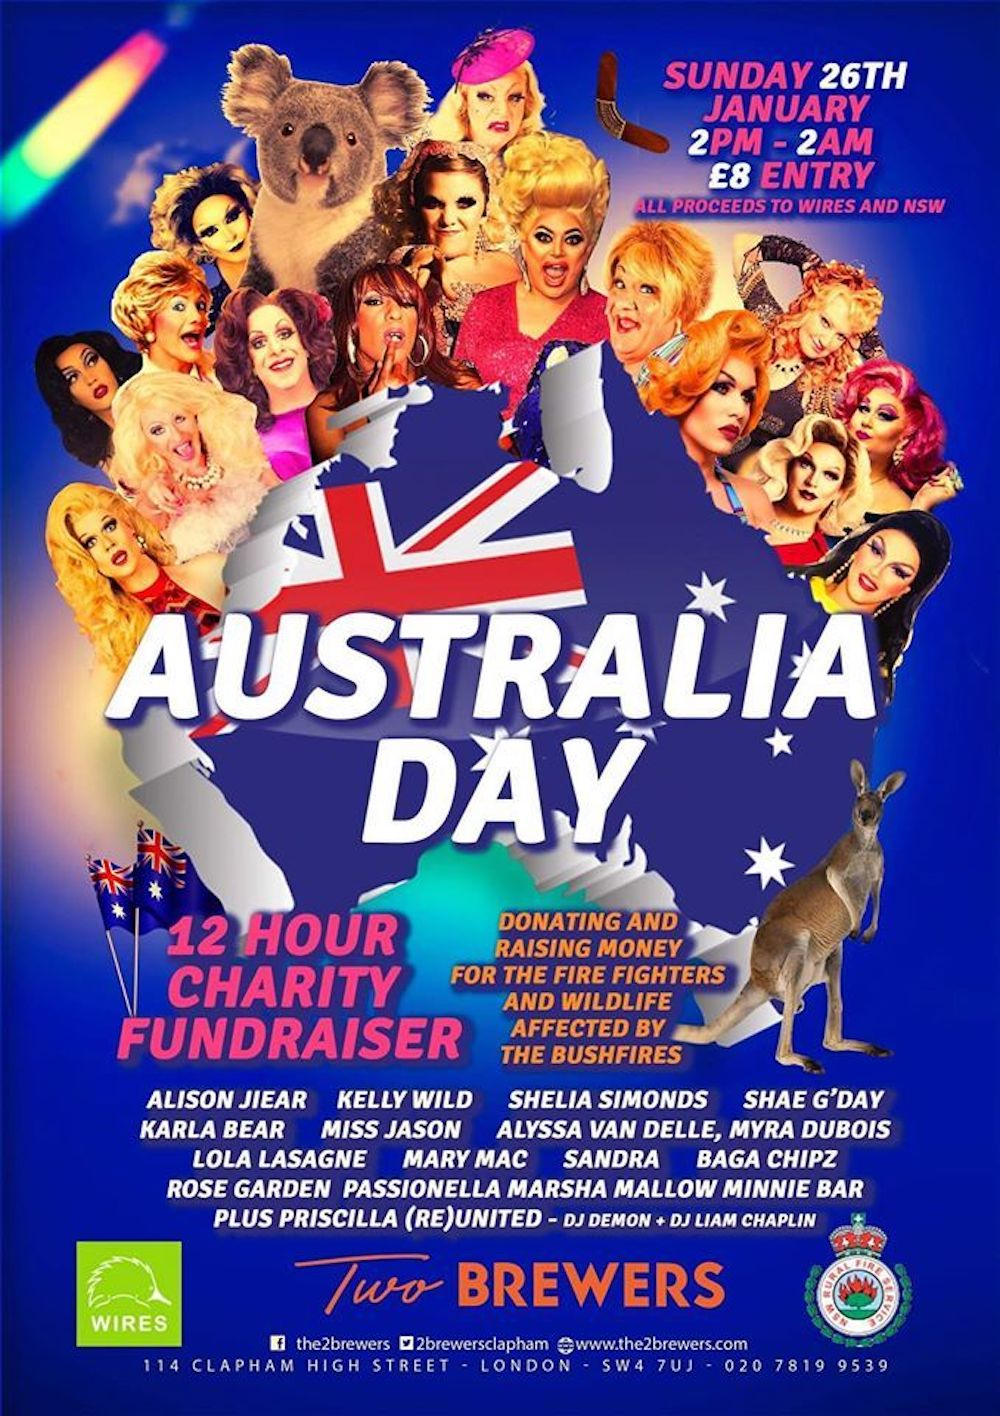 A poster for Two Brewers' Australia Day fundraiser to aid firefighters and wildlife affected by the widespread Australian bushfires.